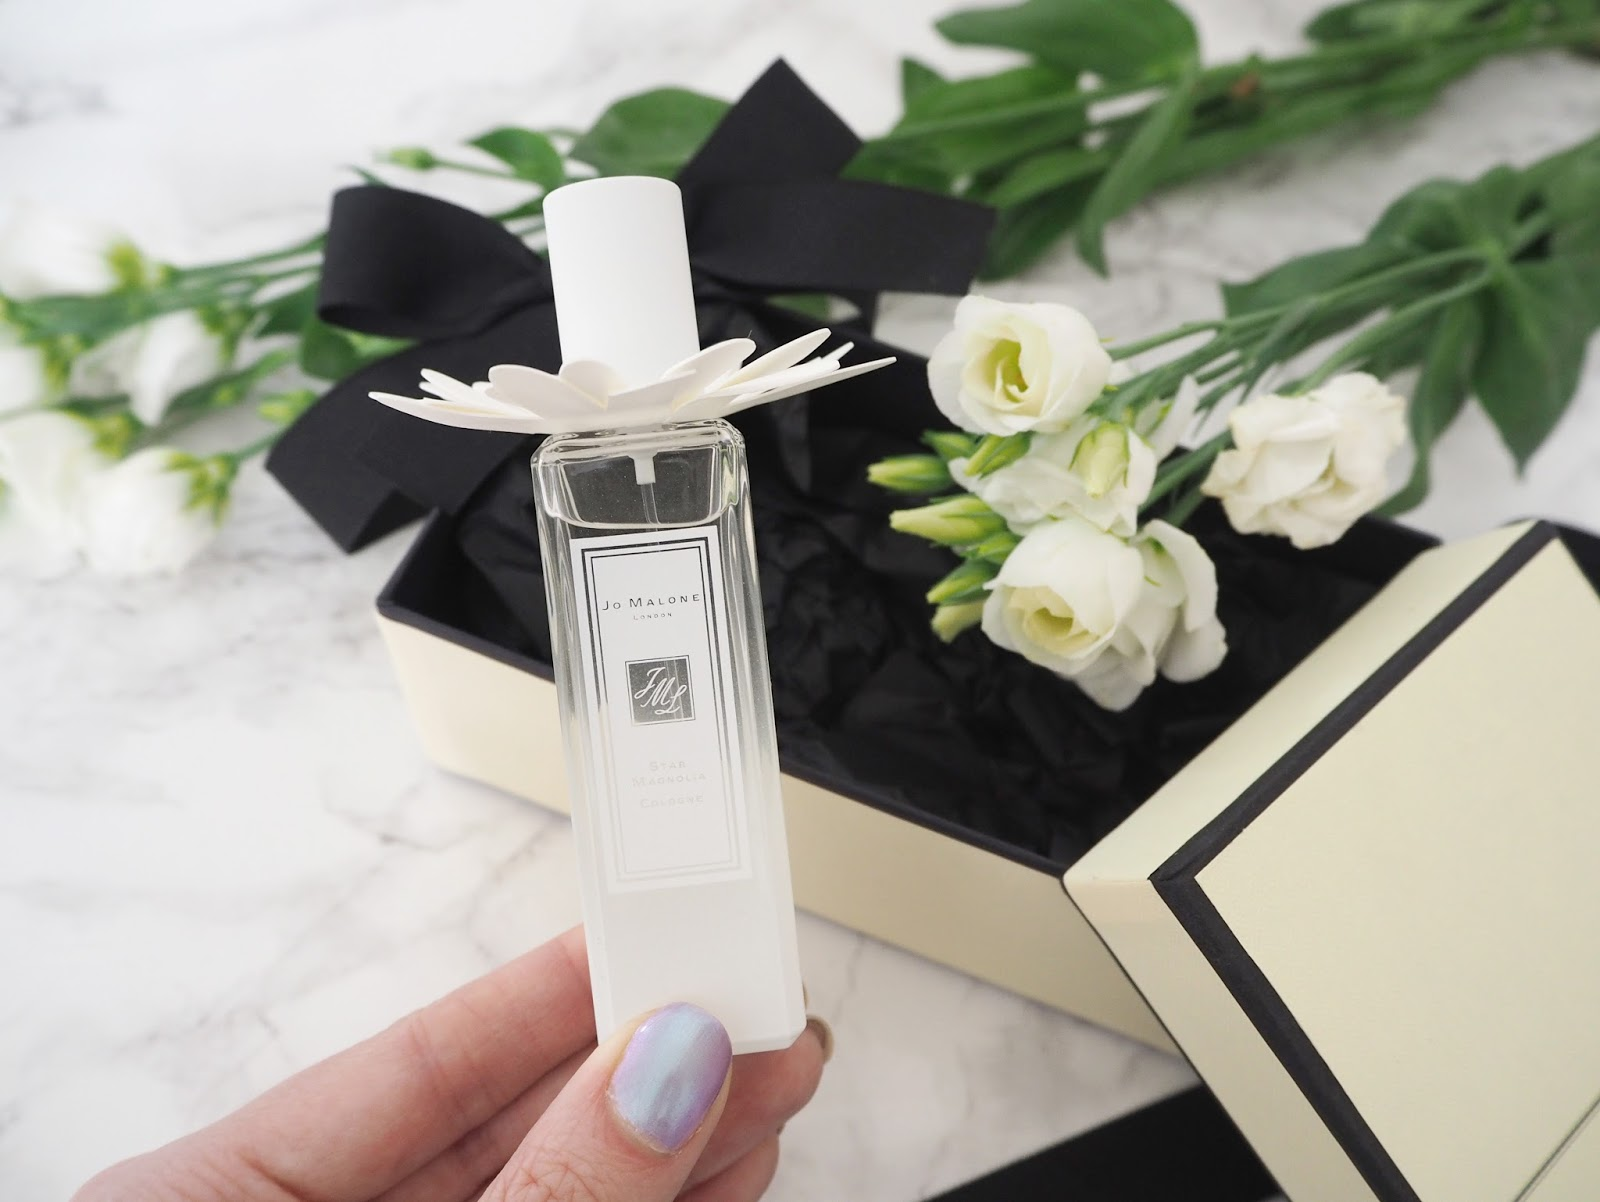 Jo Malone New Launches, Jo Malone Star Magnolia, Jo Malone Exfoliating Shower Gels, Jo Malone Fragrance, Perfume, Fragrance Review,